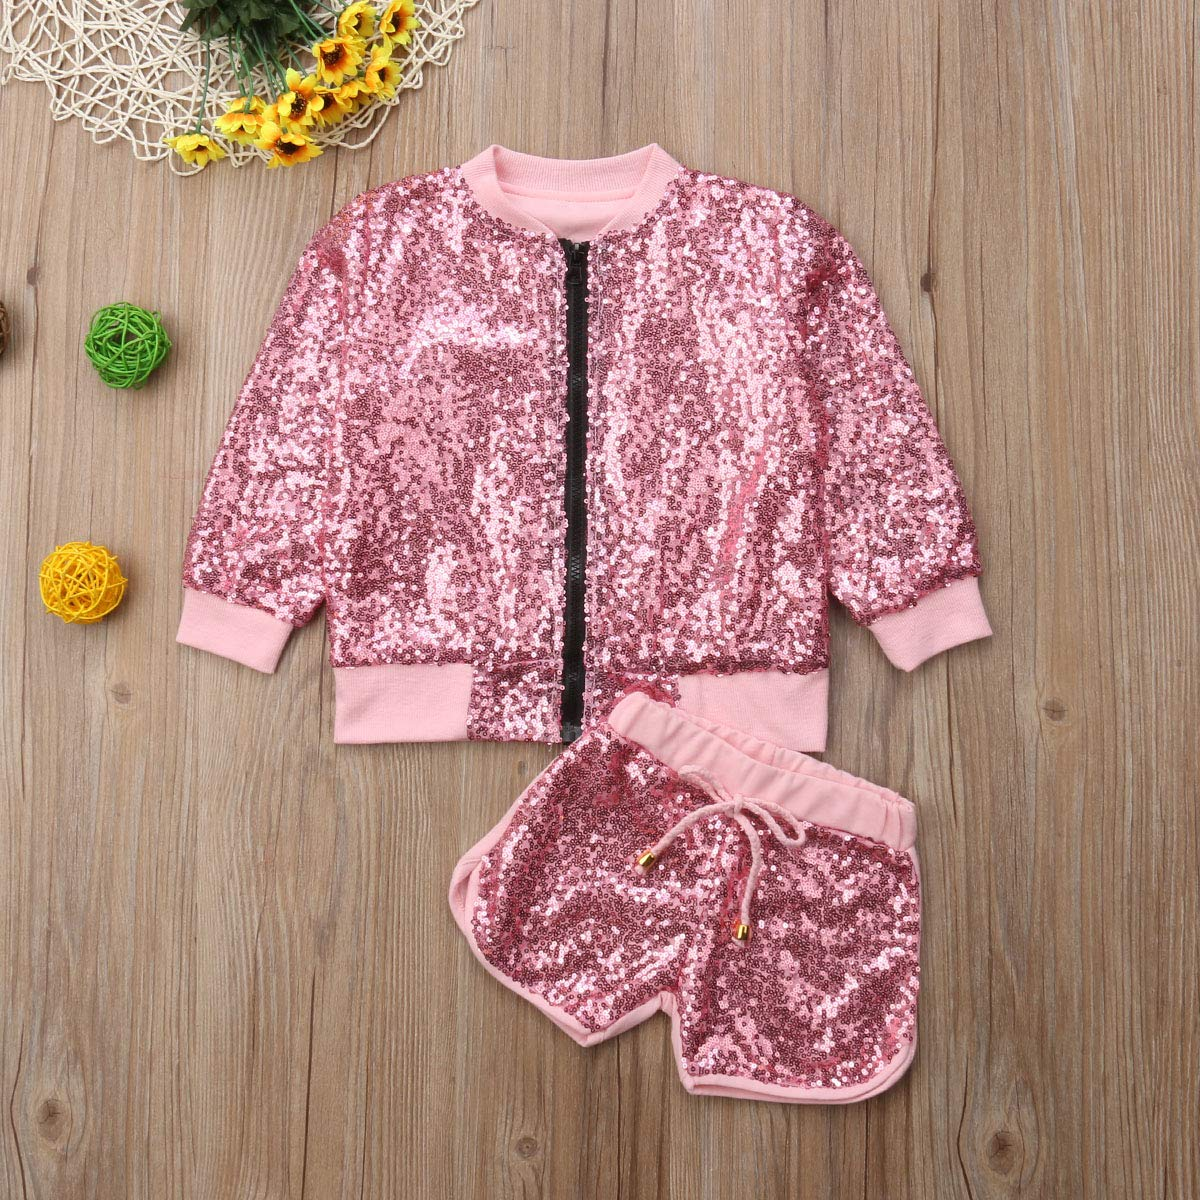 Mubineo Toddler Baby Girl Kids Fall Jacket Outfits Sequin Zipper Tops Shorts Clothes Set